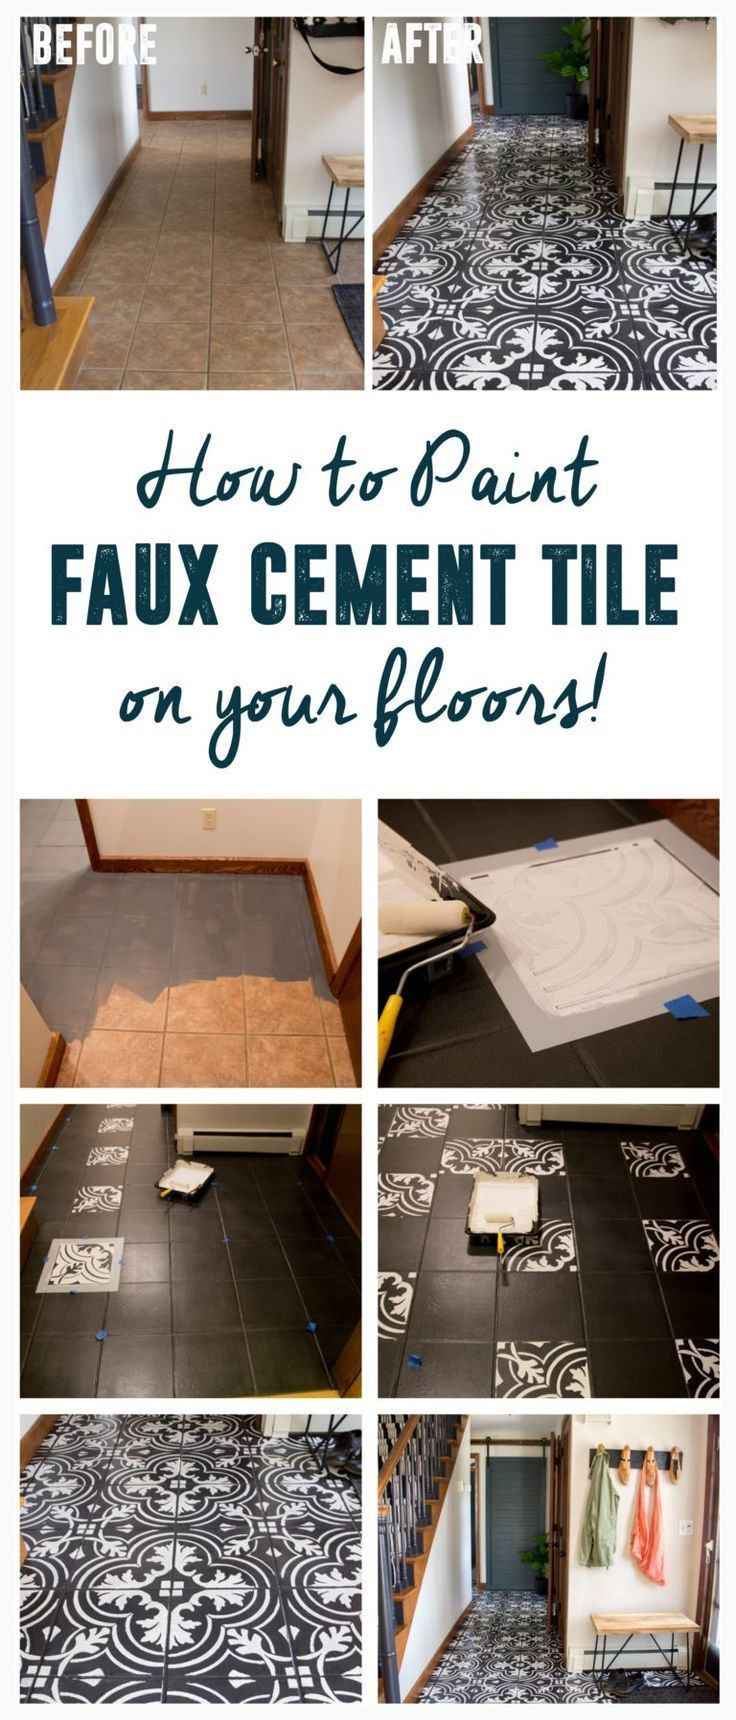 Faux cement tile painted floors painted tiles tile flooring and faux cement tile painted floors dailygadgetfo Gallery